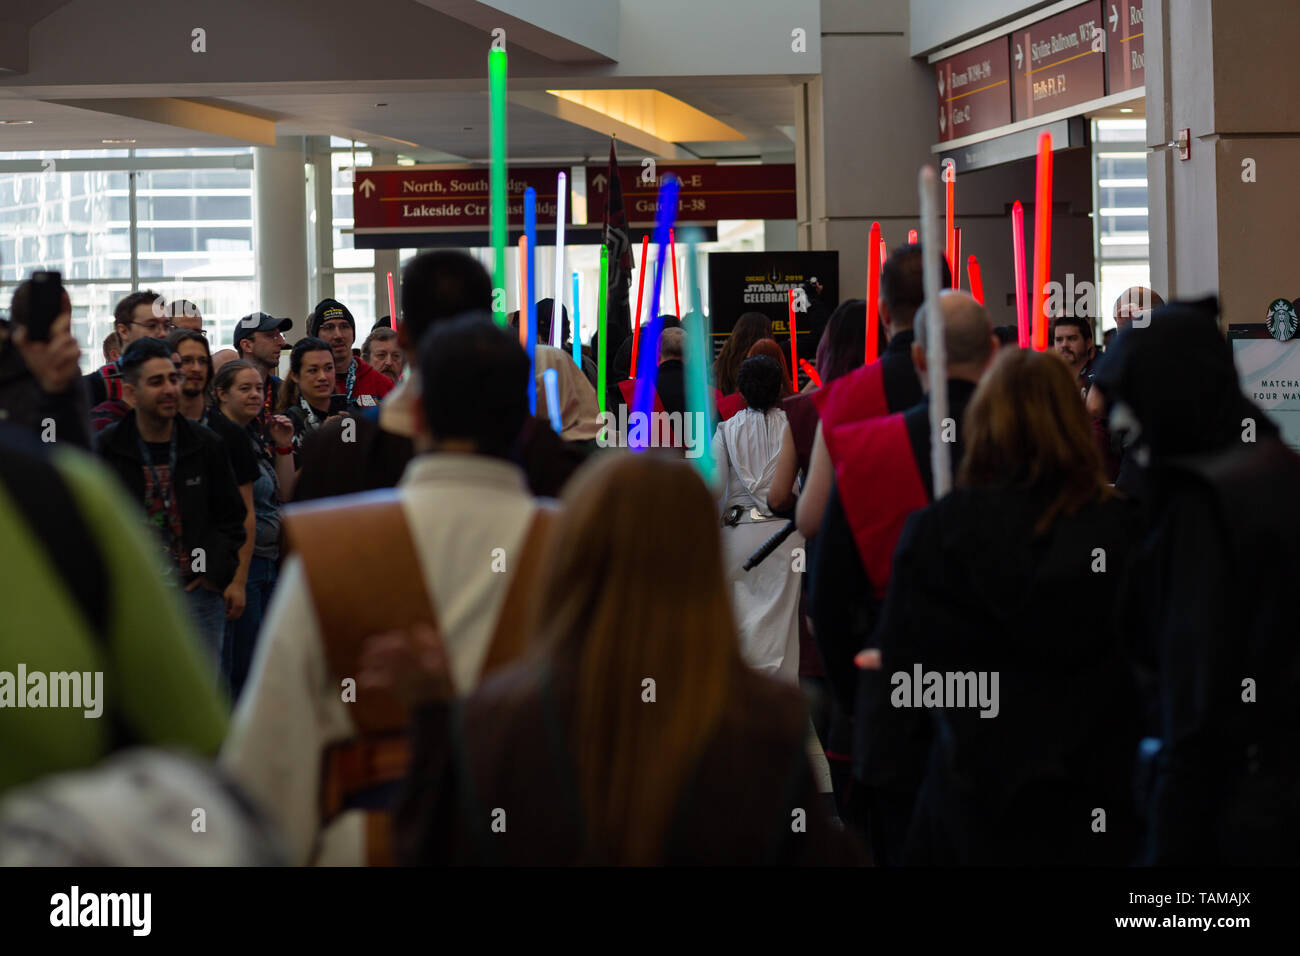 People holding up multicolored lightsabers dressed in cosplay costumes at Star Wars Celebration 2019 - Chicago, IL - Stock Image